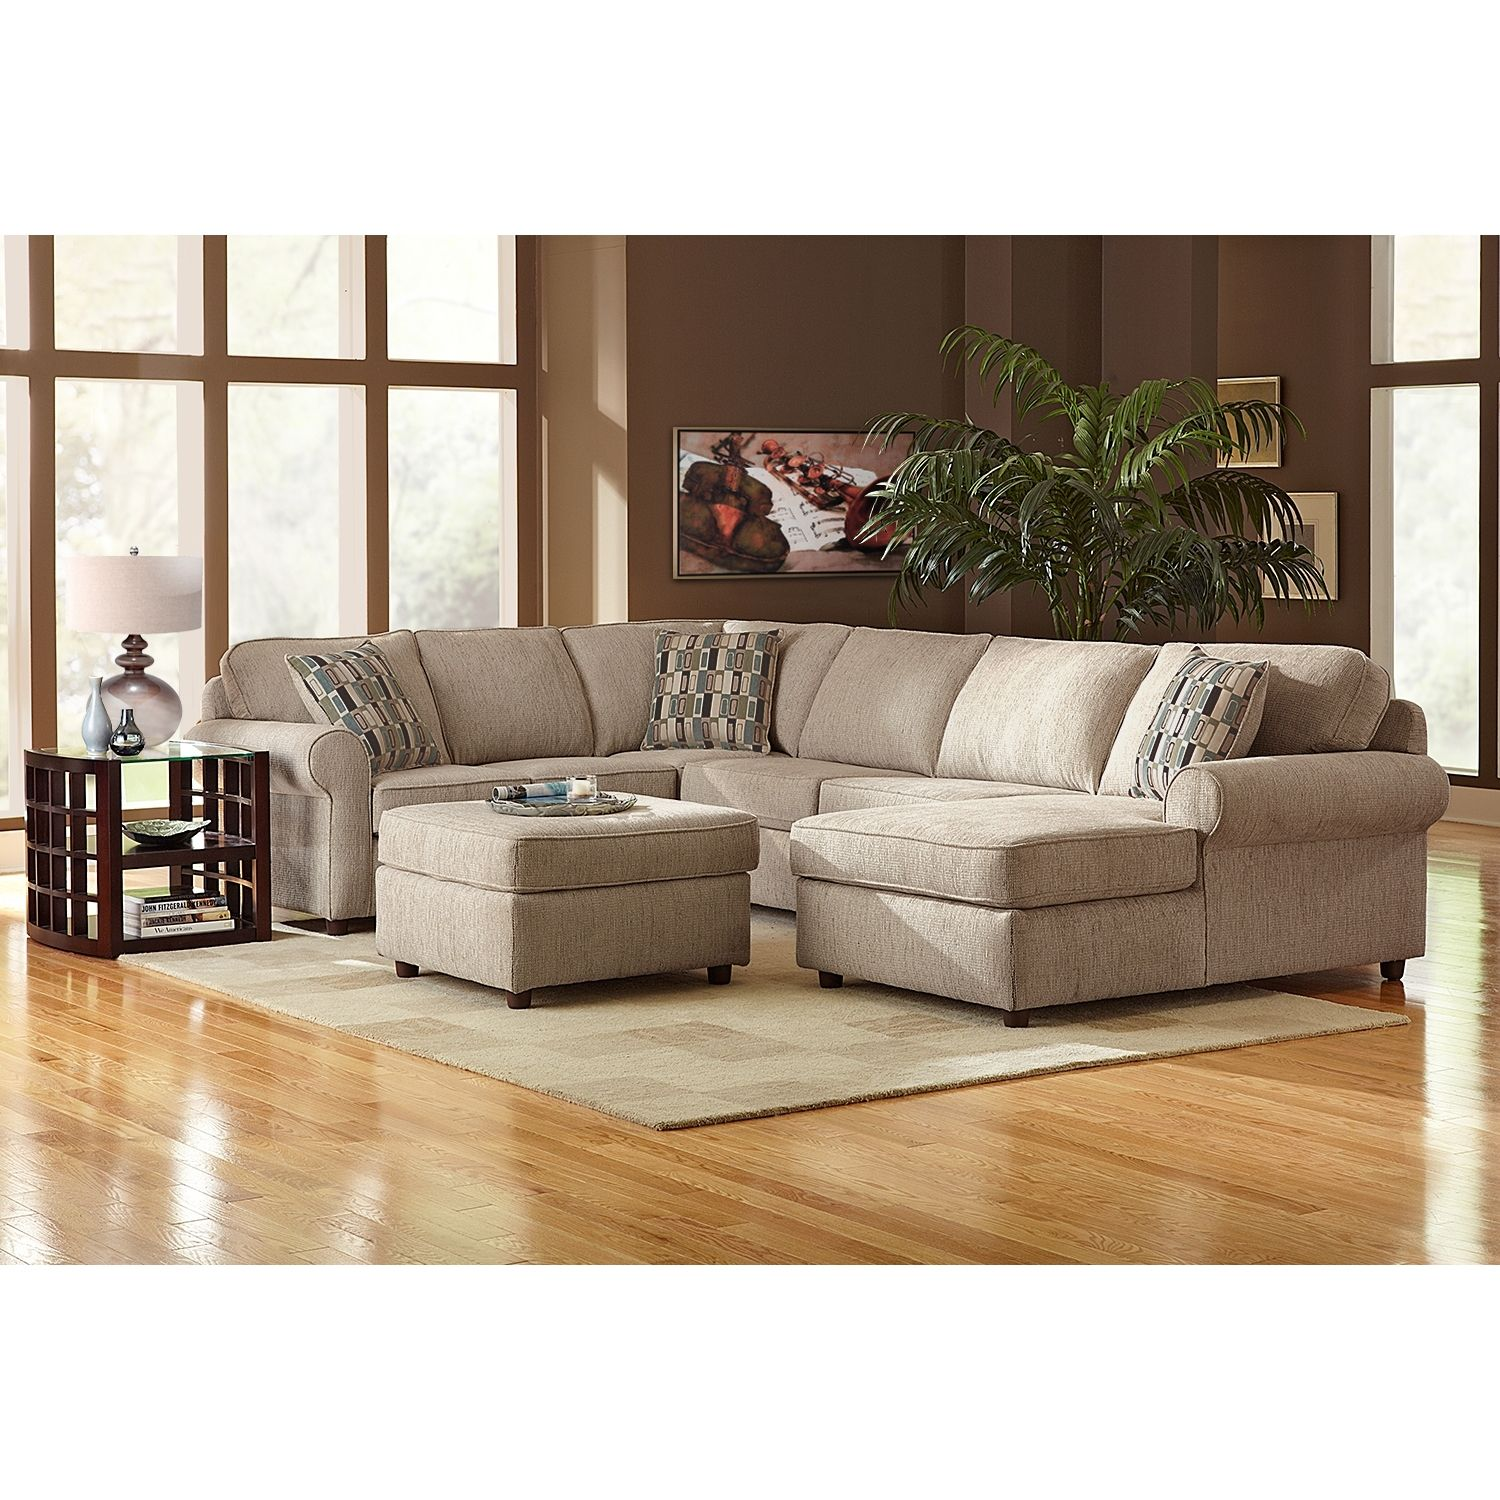 Value City Furniture Living Room Monarch Ii 3 Piece Sectional Value City Furniture Ashleigh